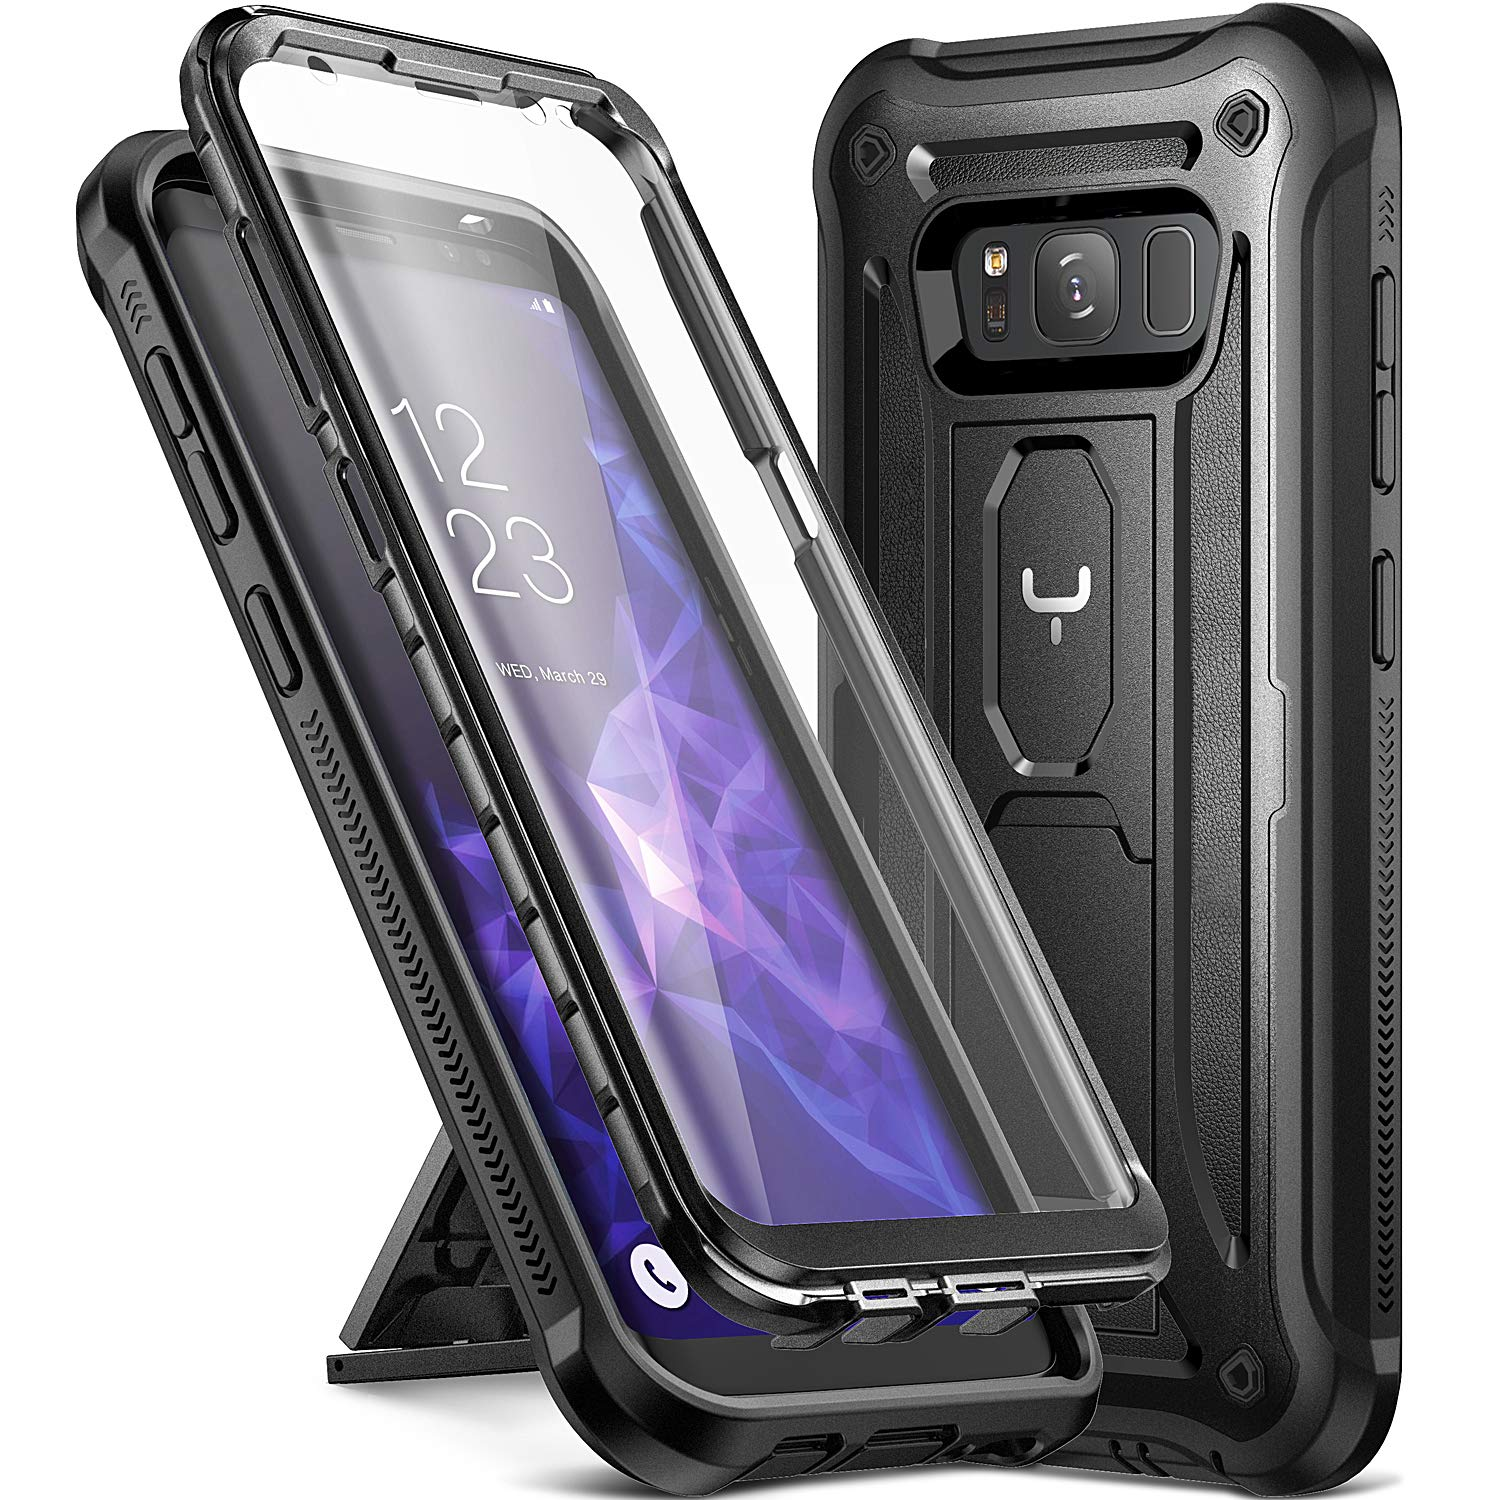 cheaper 1e078 c519b YOUMAKER Kickstand Case for Galaxy S8, Full Body with Built-in Screen  Protector Heavy Duty Protection Shockproof Rugged Cover for Samsung Galaxy  S8 ...